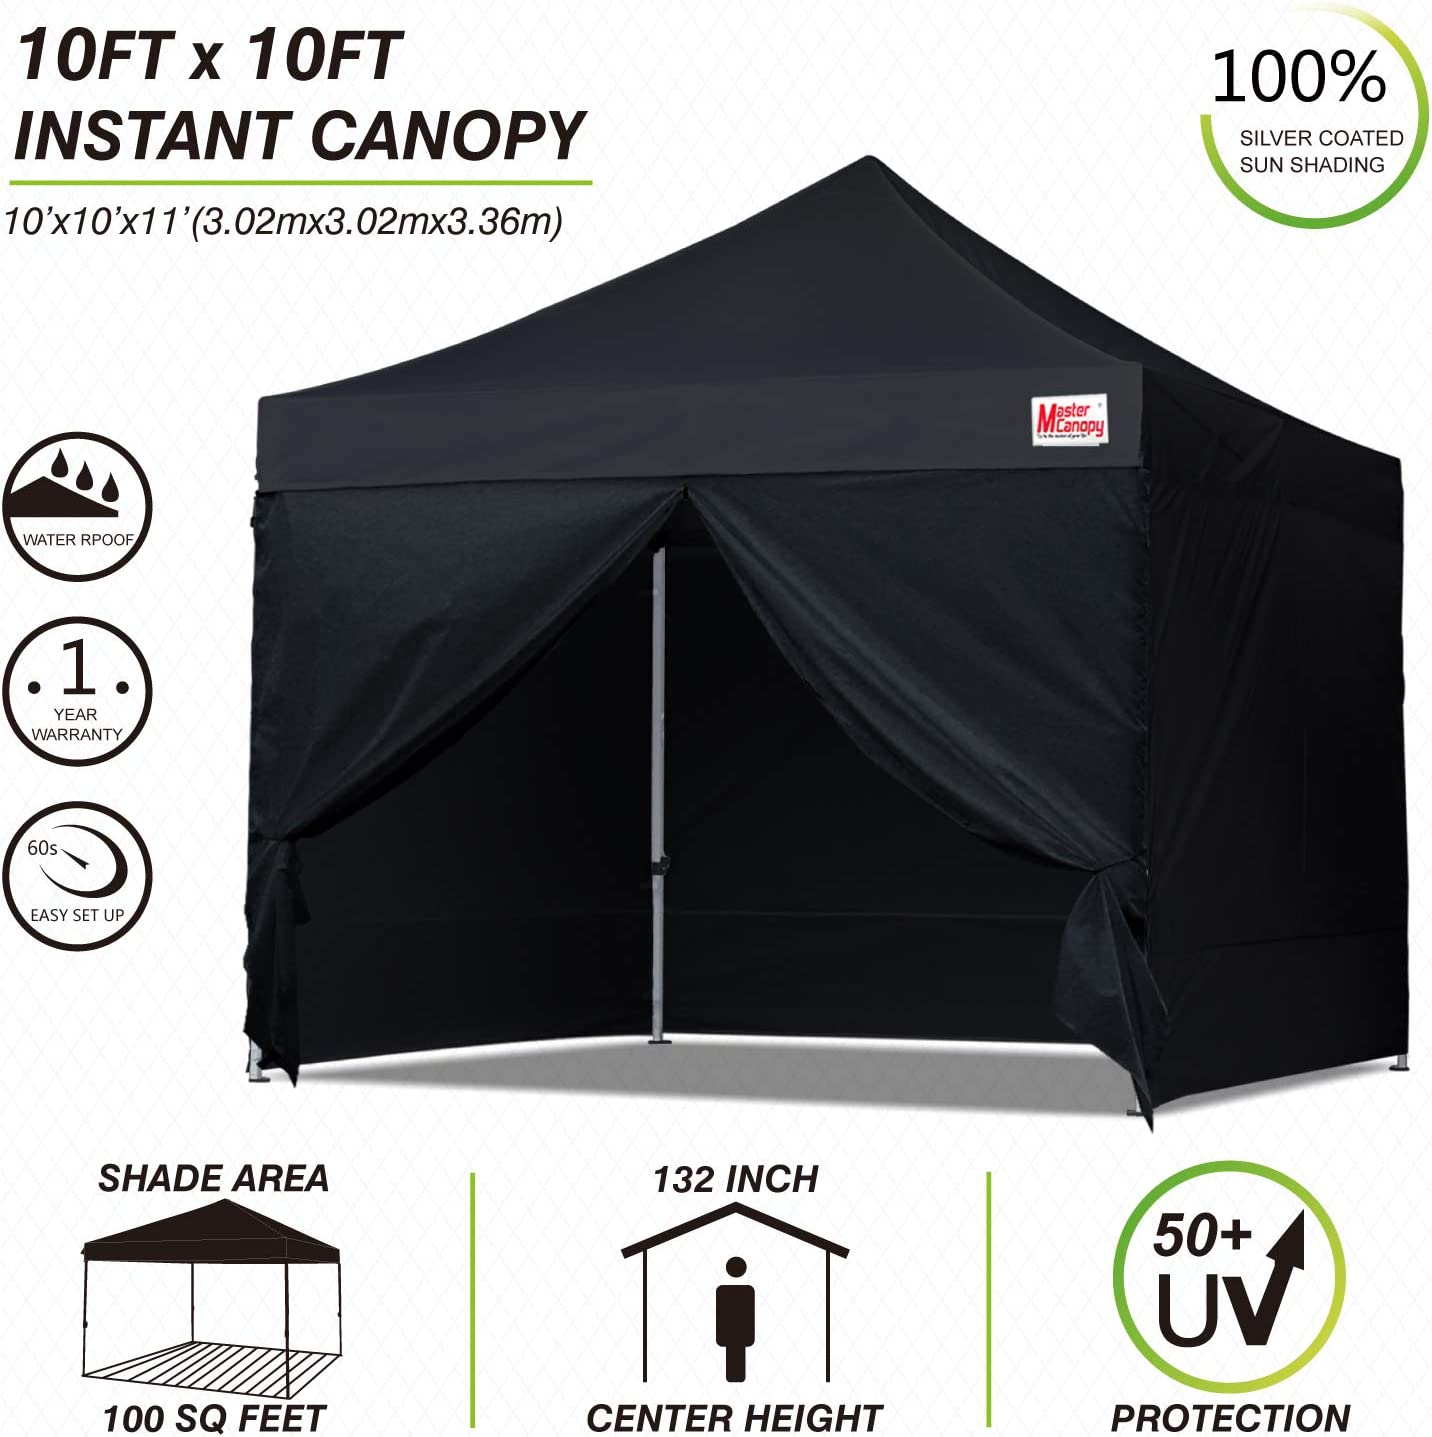 MASTERCANOPY Ez Pop-up Canopy Tent 10x10 Commercial Instant Canopies with 4 Removable Side Walls and Roller Bag 10x10 Feet, White Bonus 4 SandBags